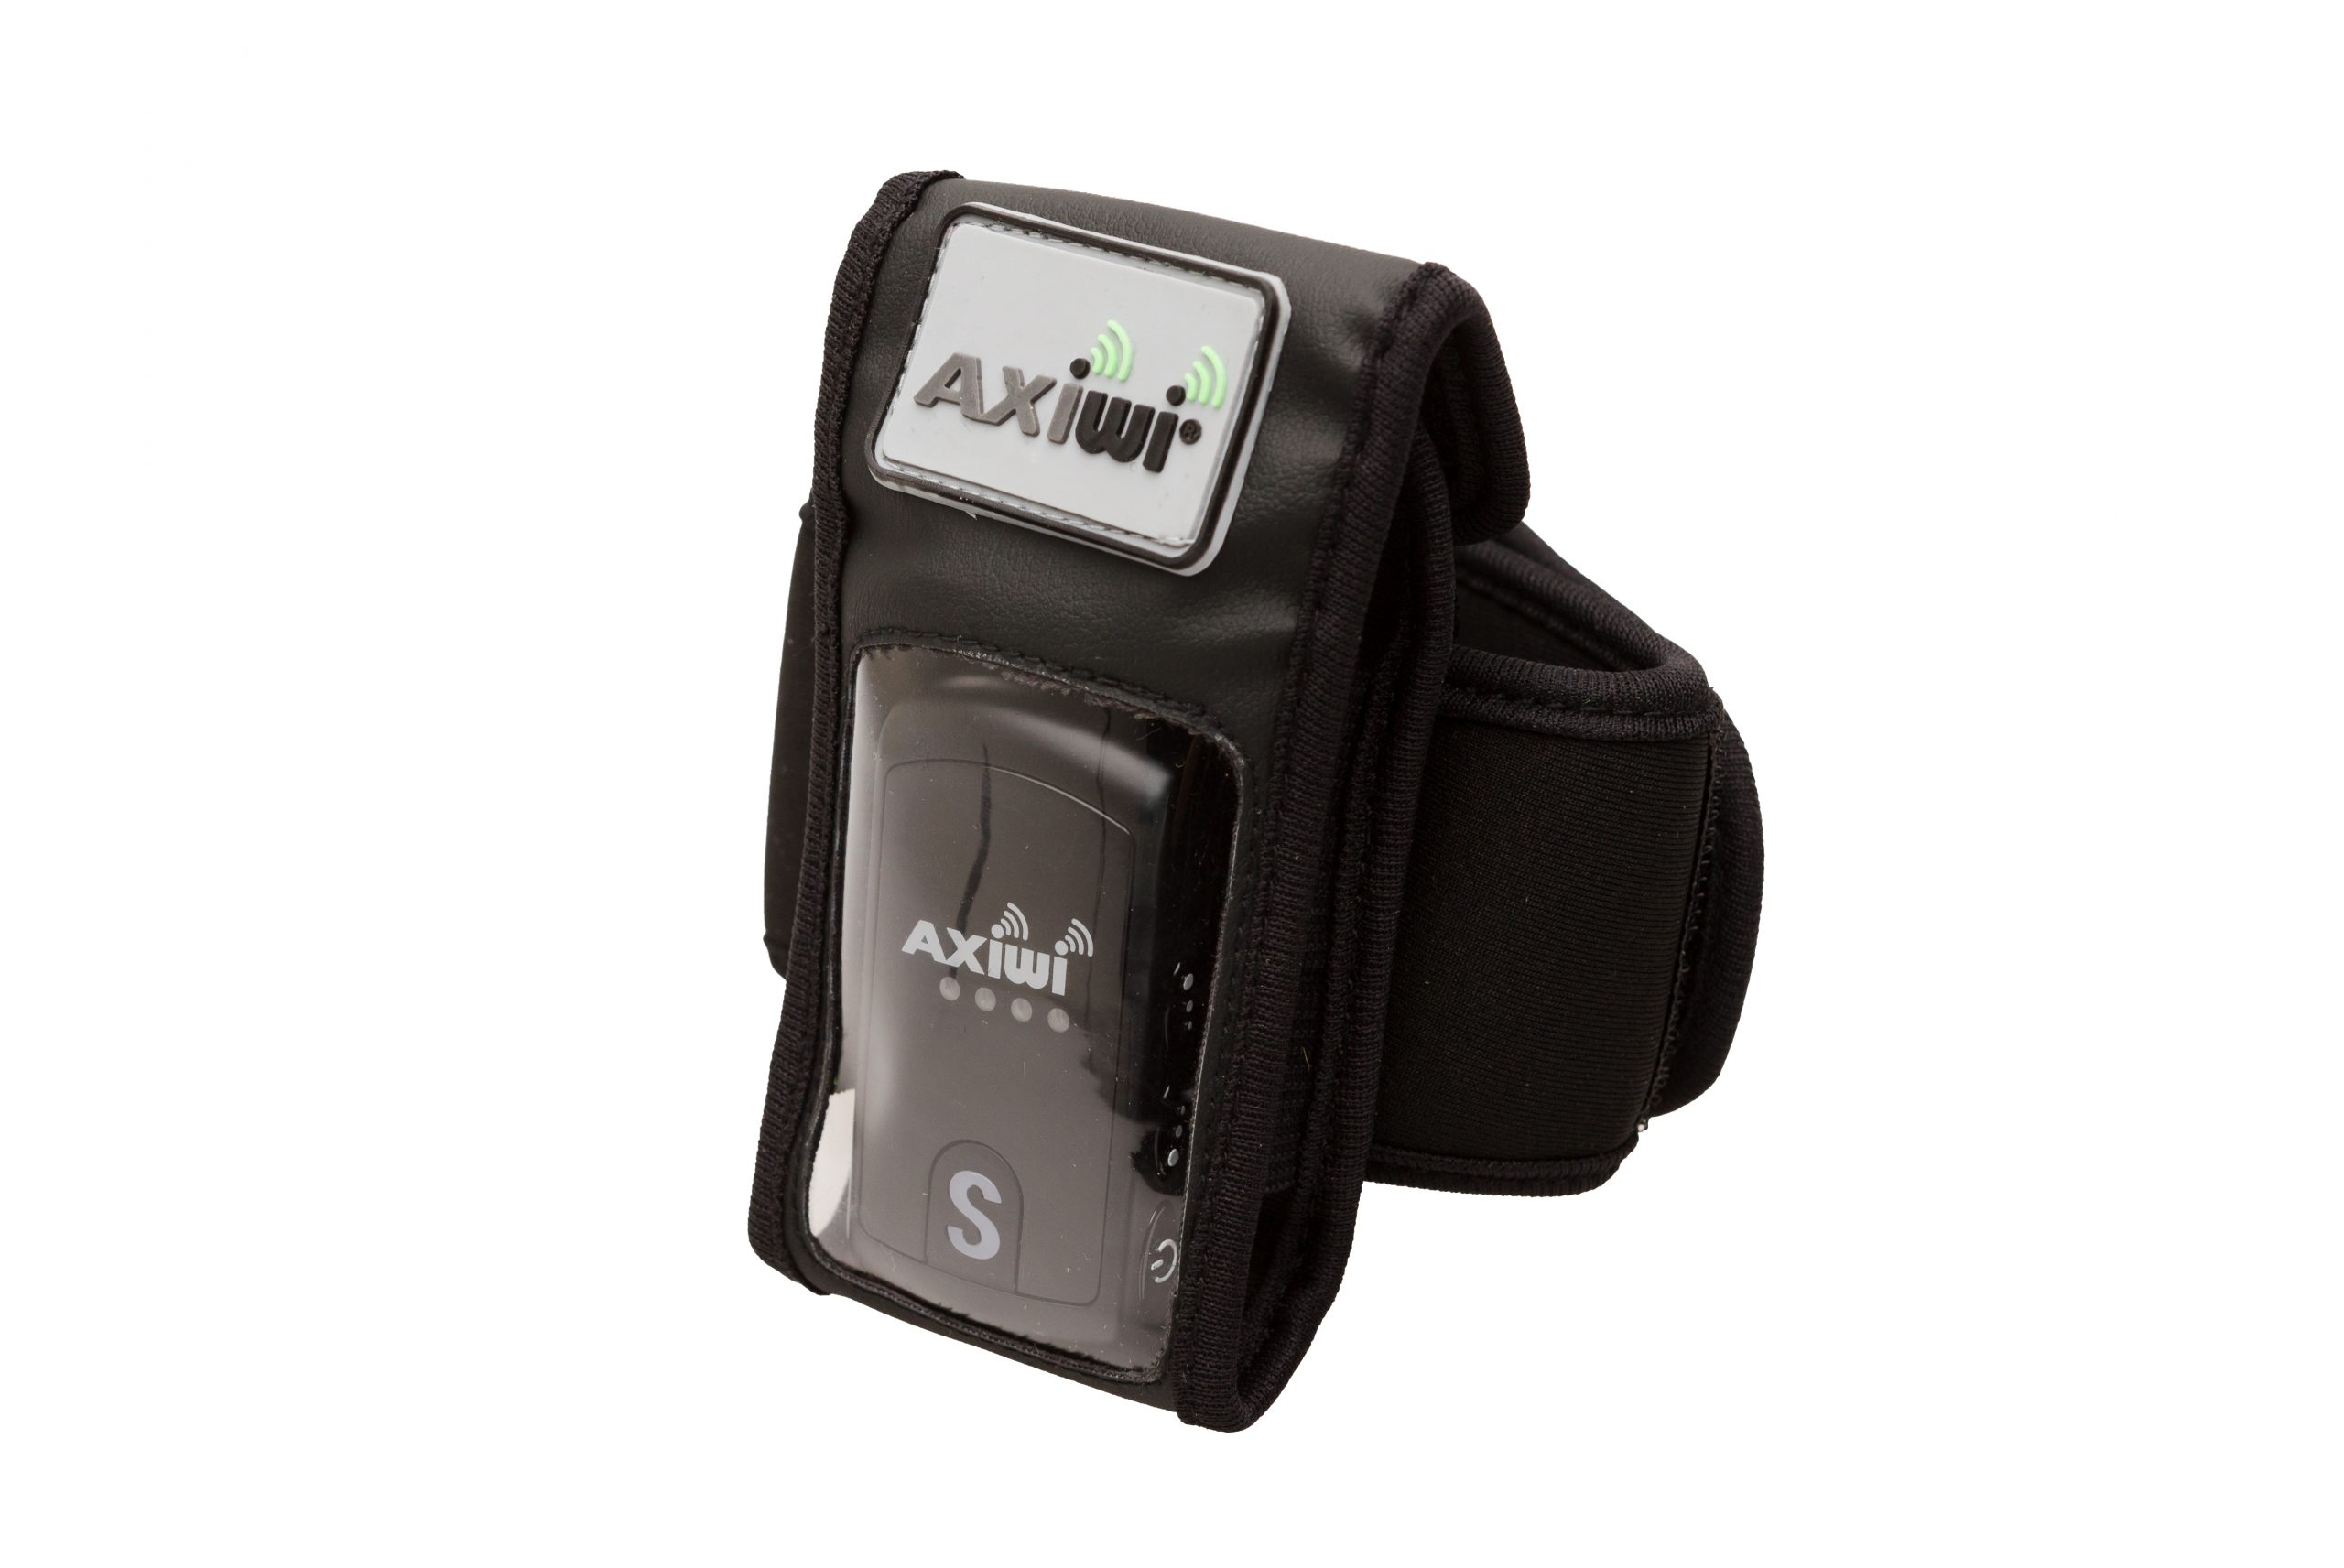 axitour-axiwi-ot-008-arm-belt-standard-protection